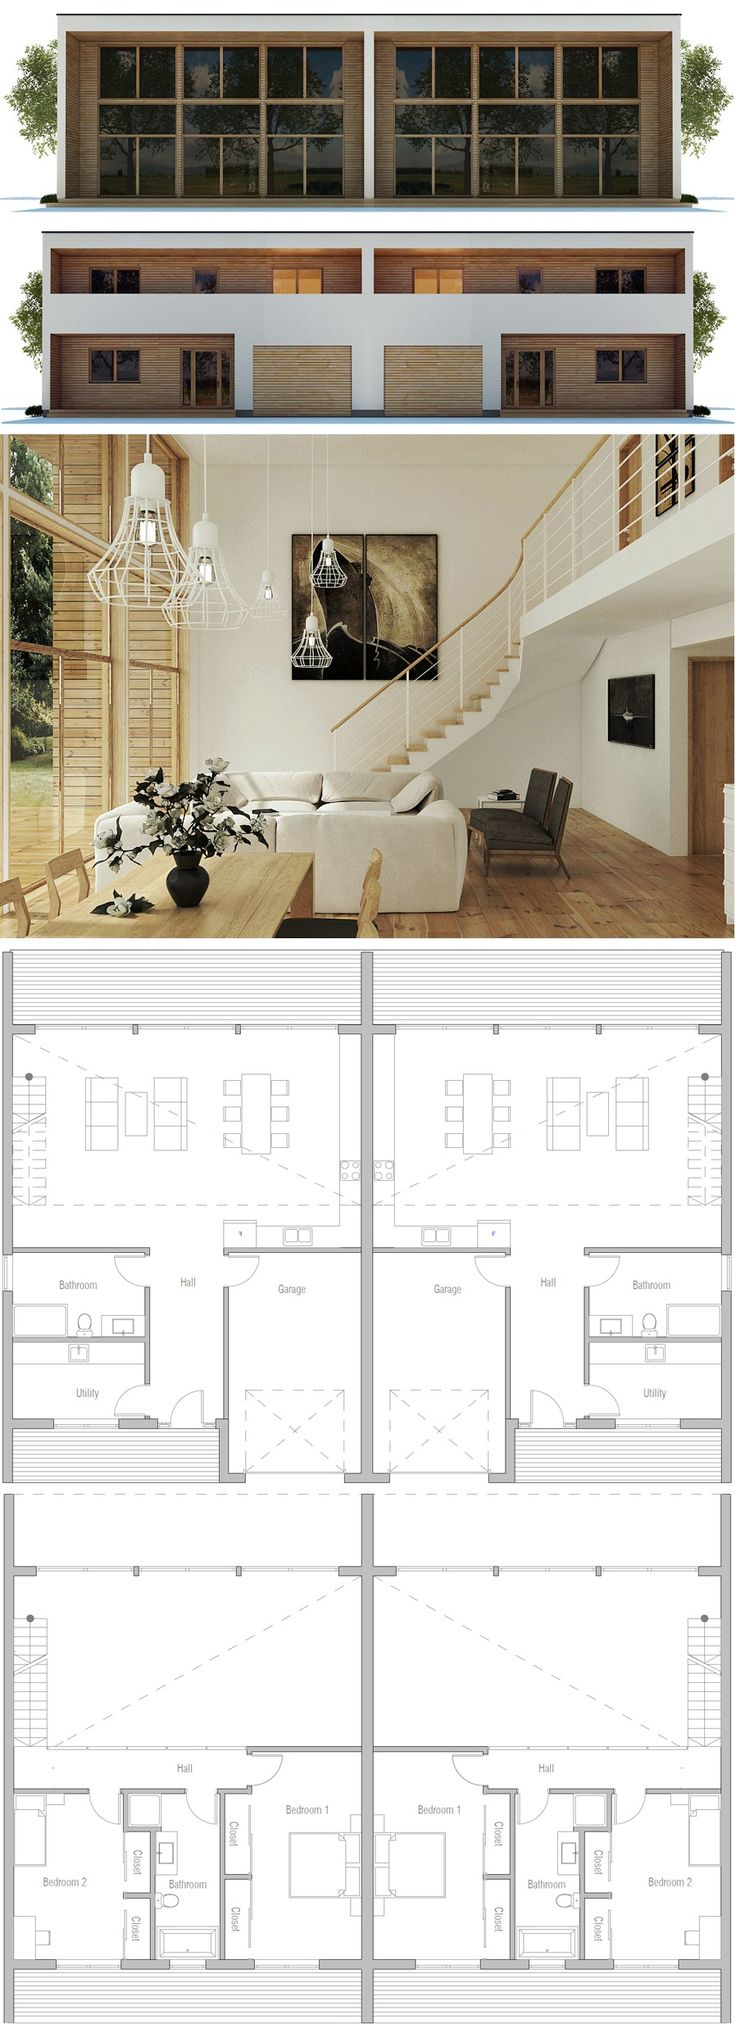 Best 20 duplex house ideas on pinterest for Maison duplex plan